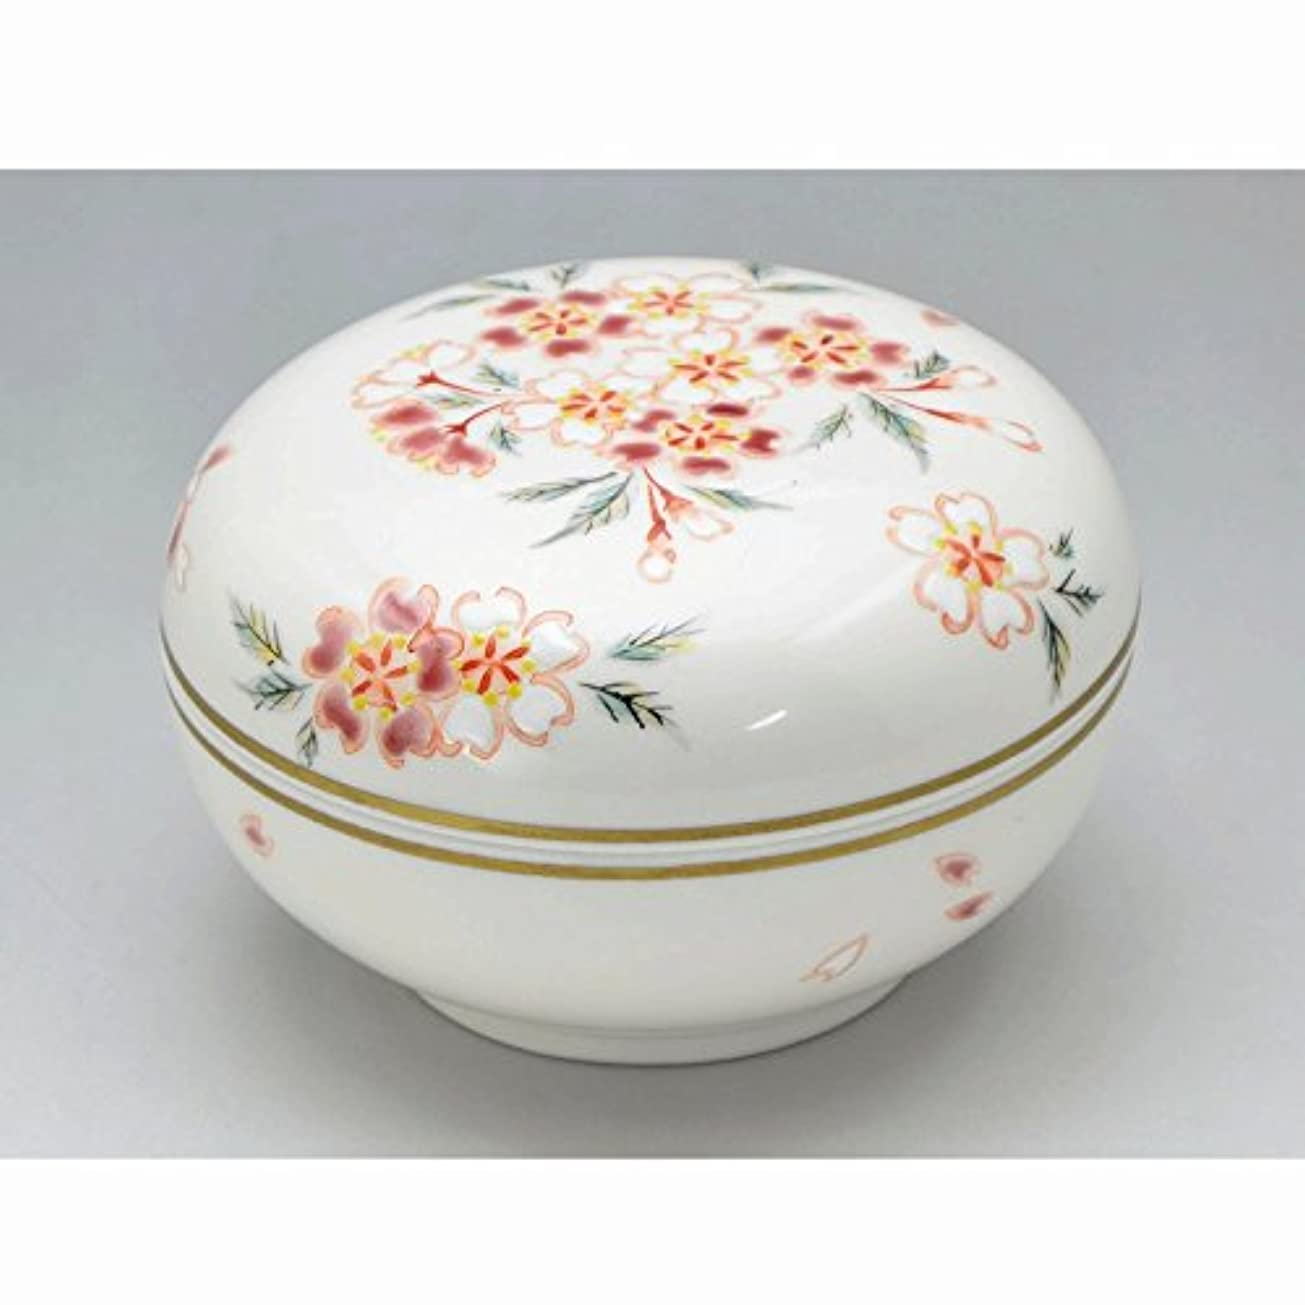 ステンレス吸収剤変成器京焼?清水焼 磁器 香合 花桜 紙箱入 Kiyomizu-kyo yaki ware. Japanese porcelain kogo incense burner hanazakura with paper box.